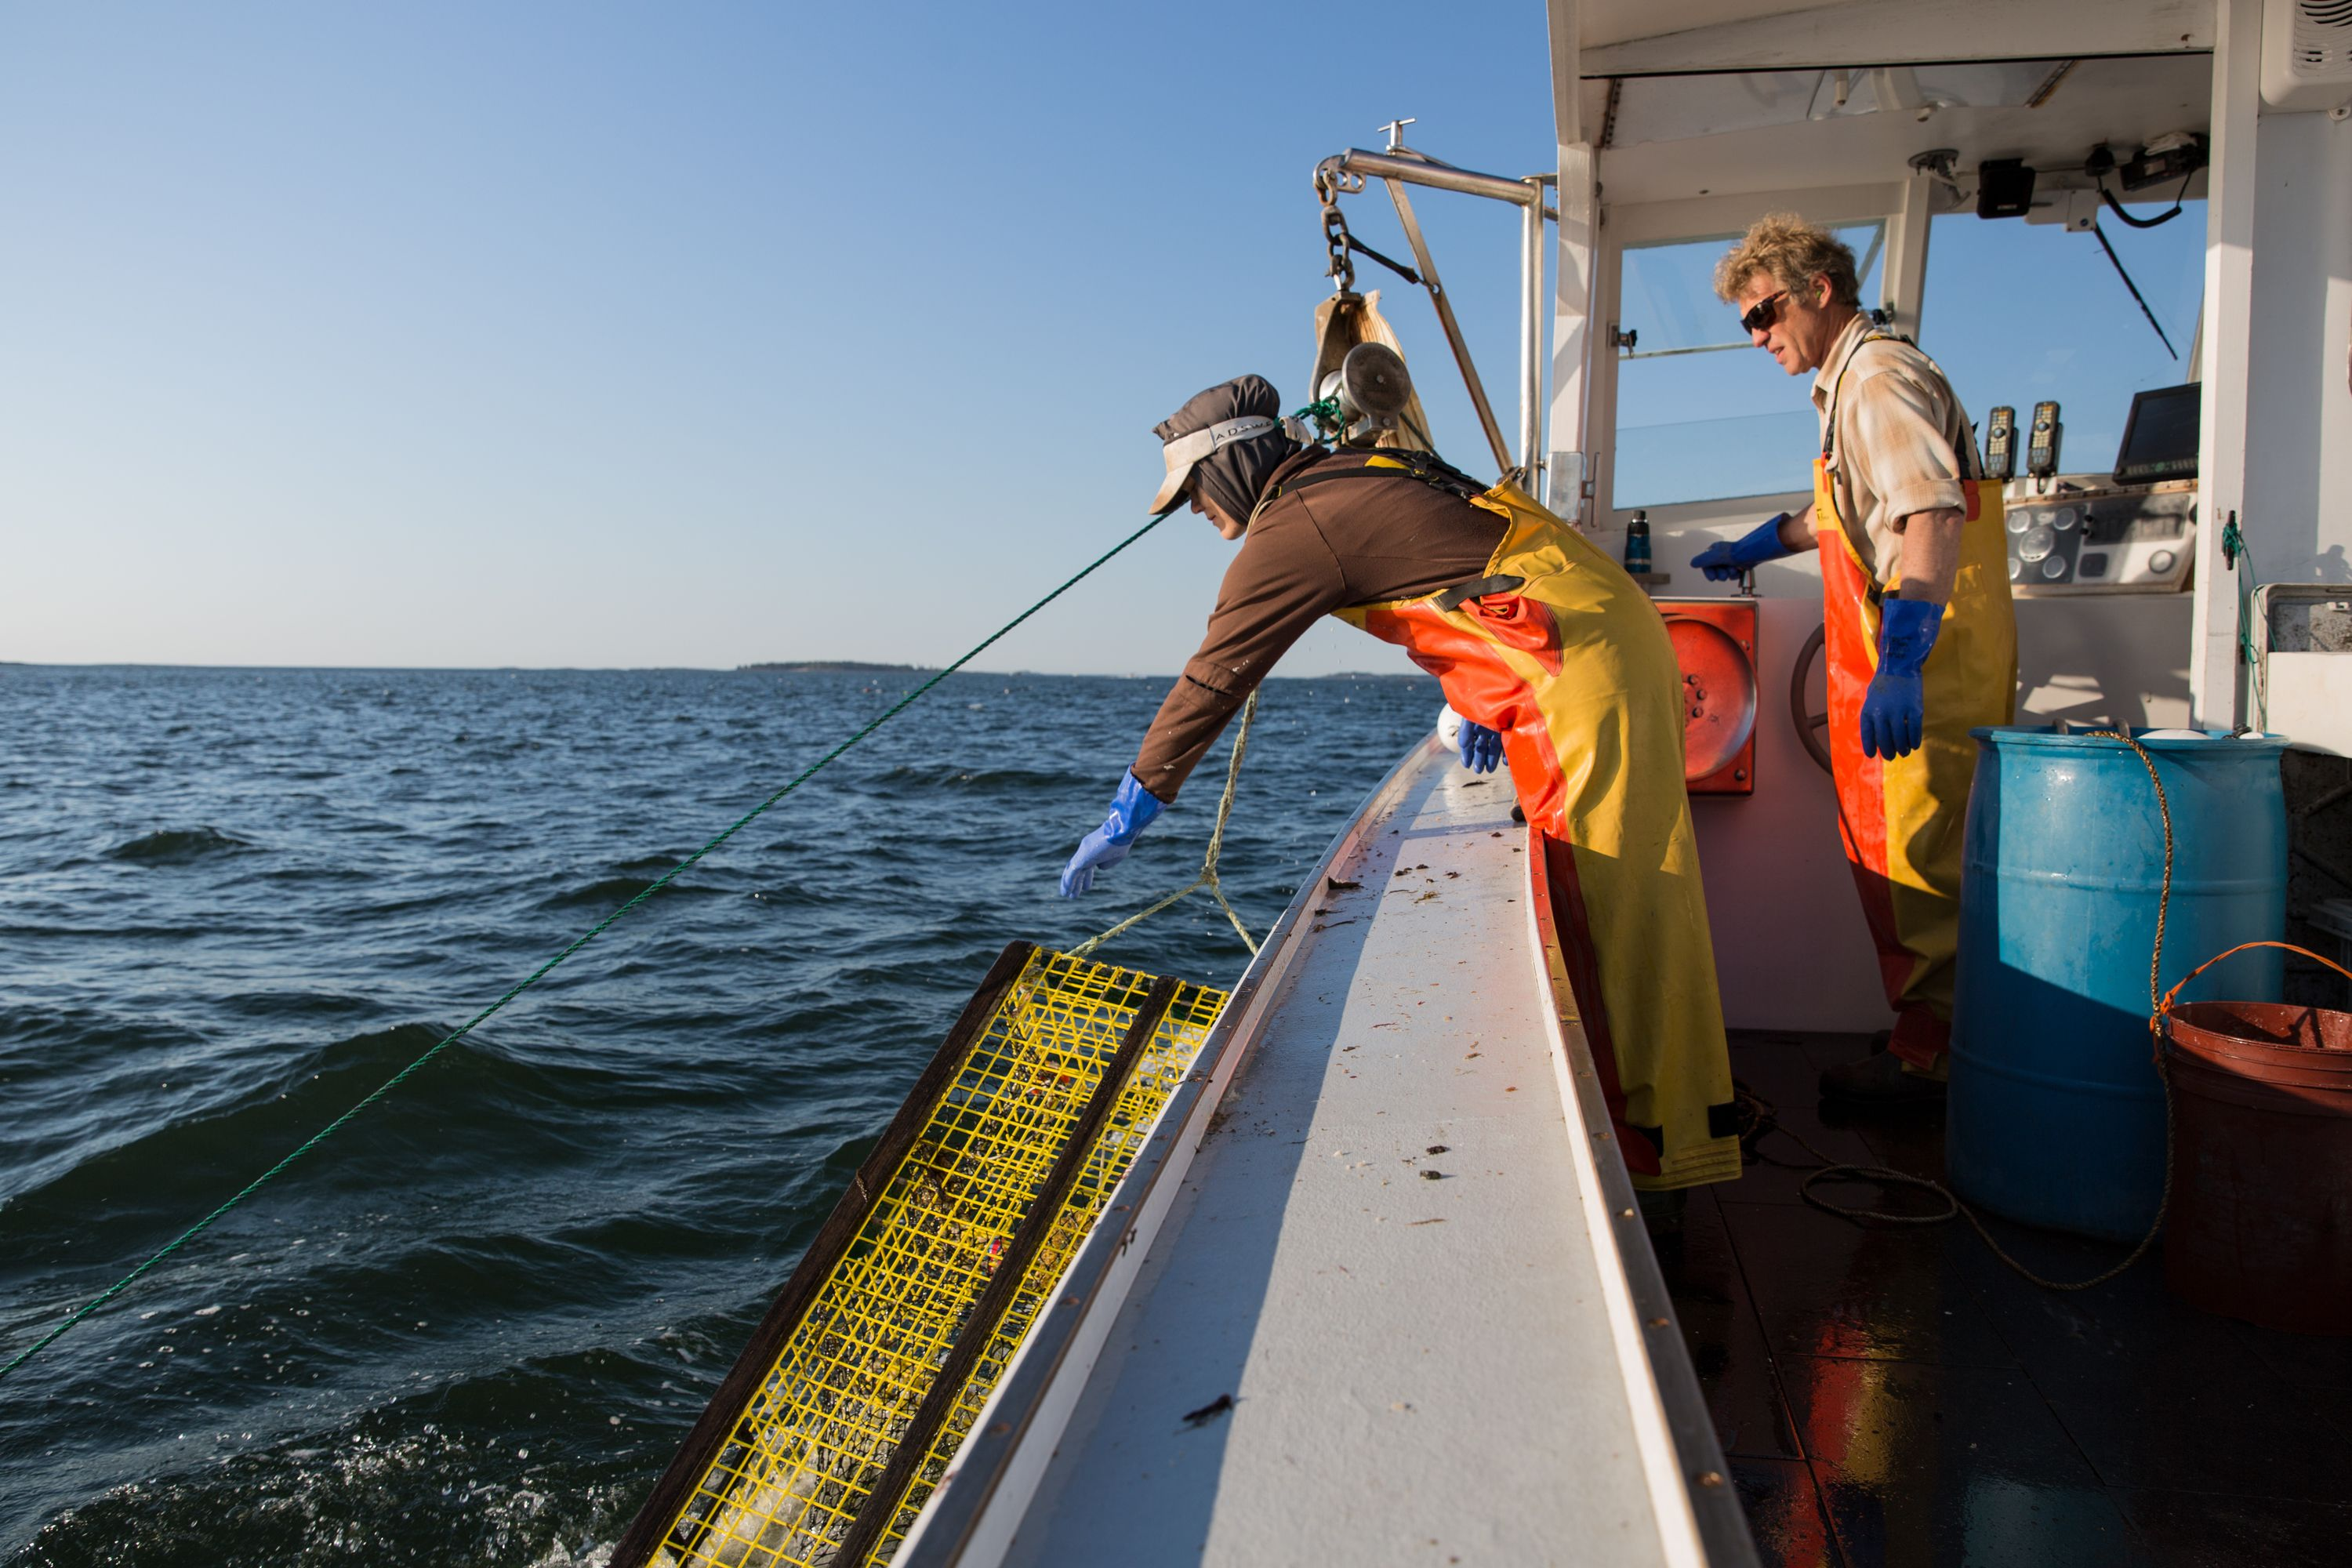 Stonington Bringing up Lobsters onto Boat